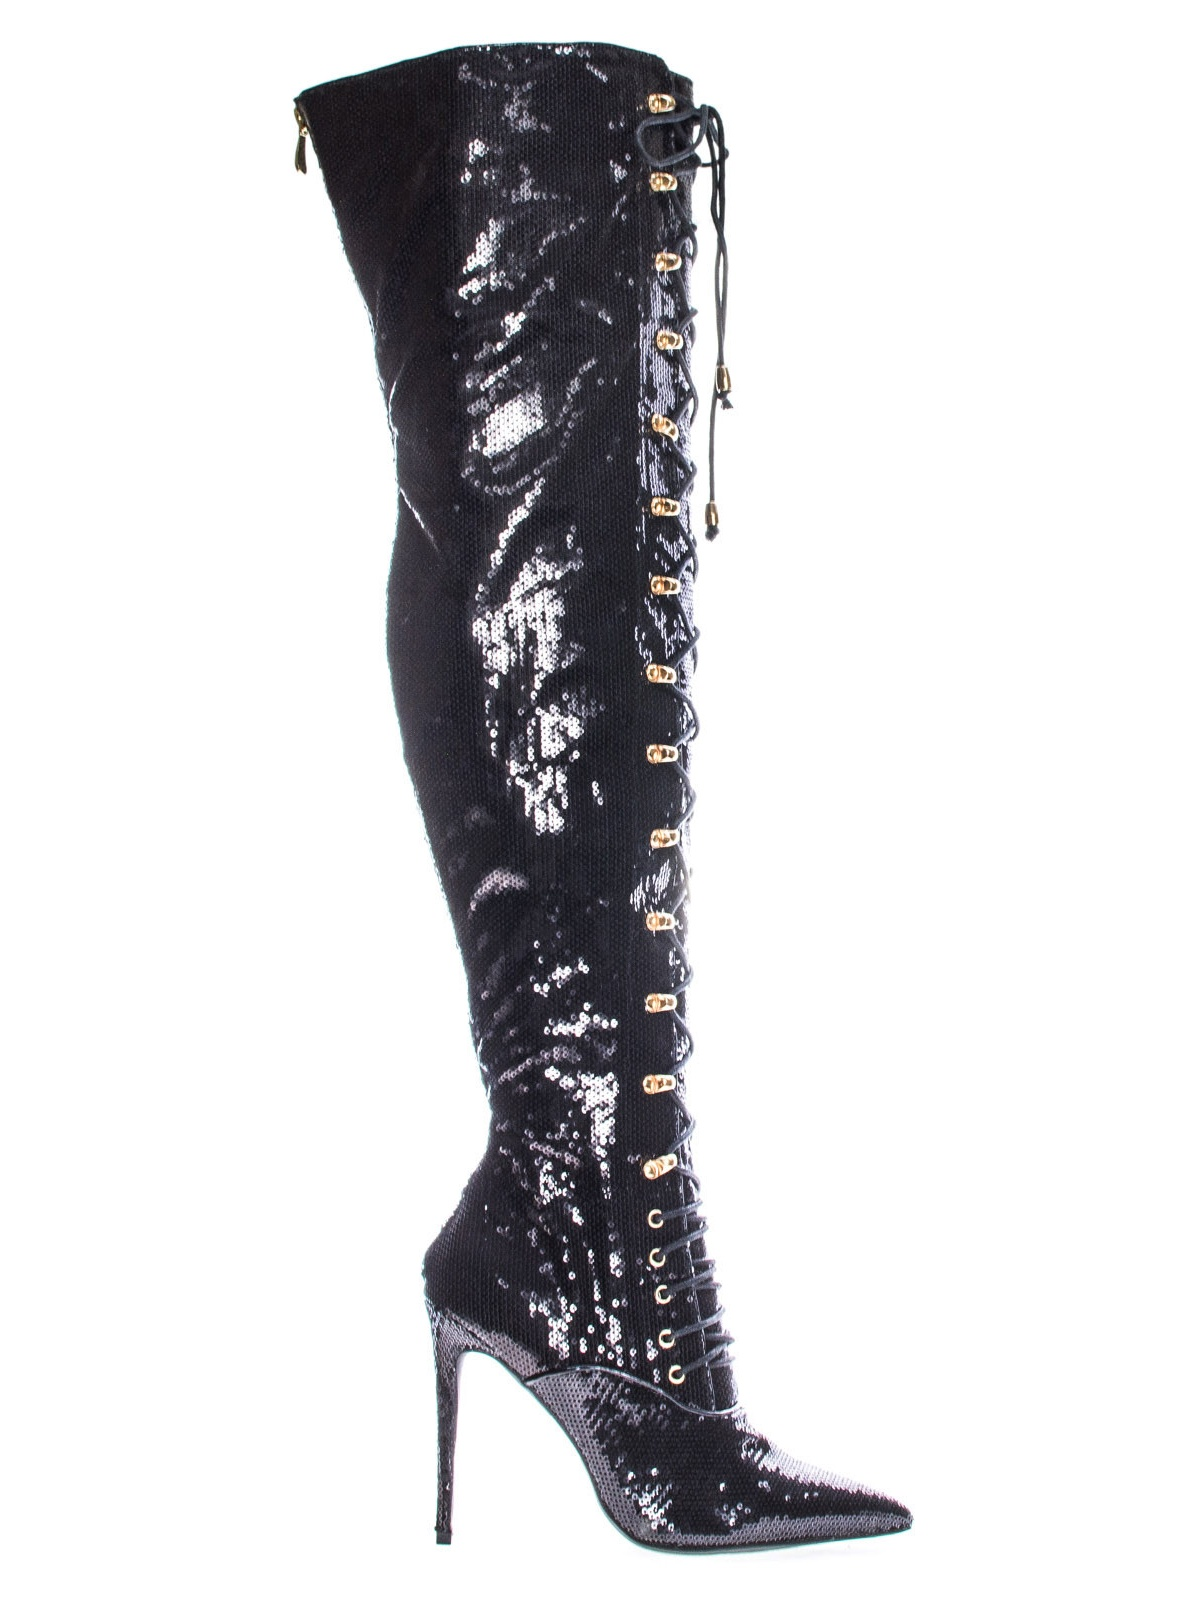 Ecstasy by Liliana, Black Glitter Military Combat Corset Lace Up Mesh Glitter Over The Knee, High Heel Dress Boot